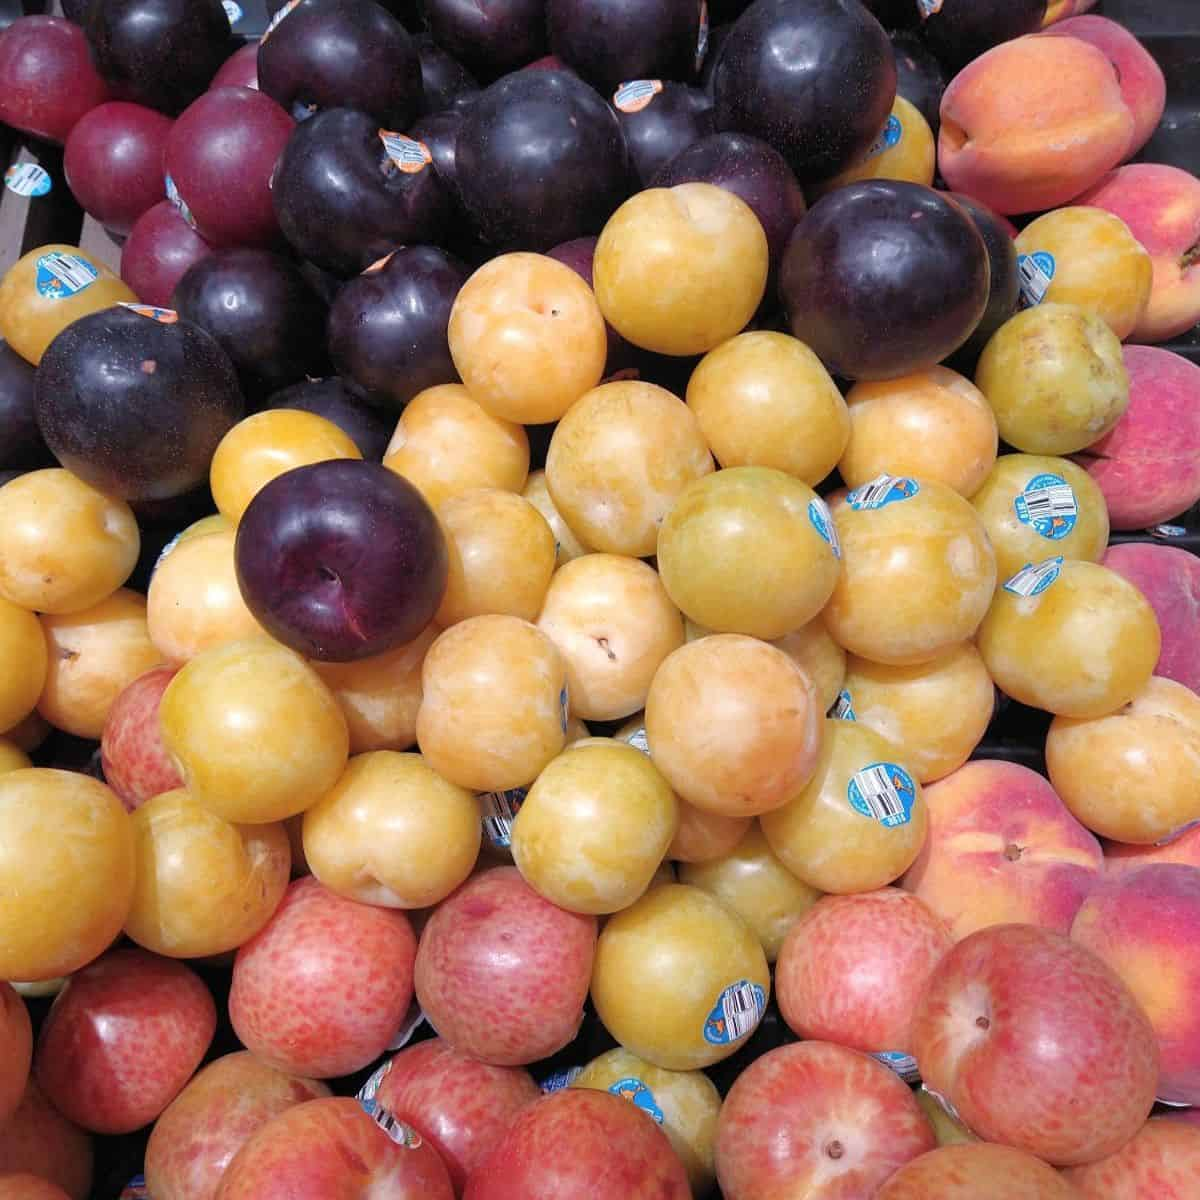 A grocery store display of different colored pluots ranging from black at the top to yellow in the middle to mottled pink on the bottom.